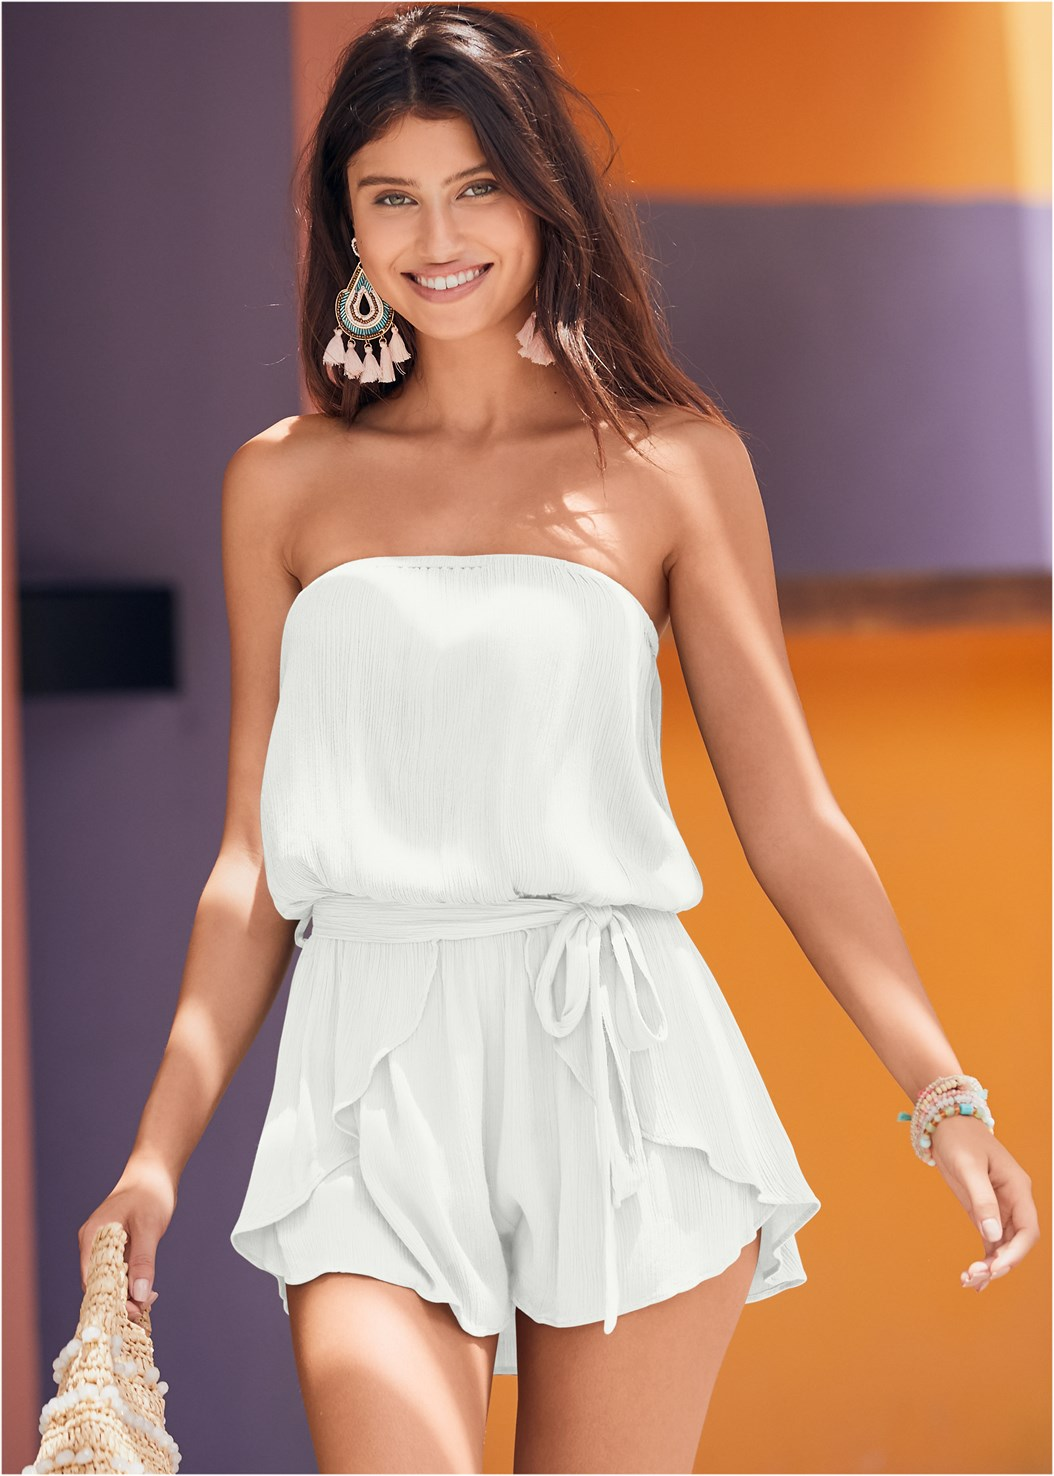 Drape Cover-Up Romper,Strappy Bandeau Top,Mid Rise Strappy Bottom